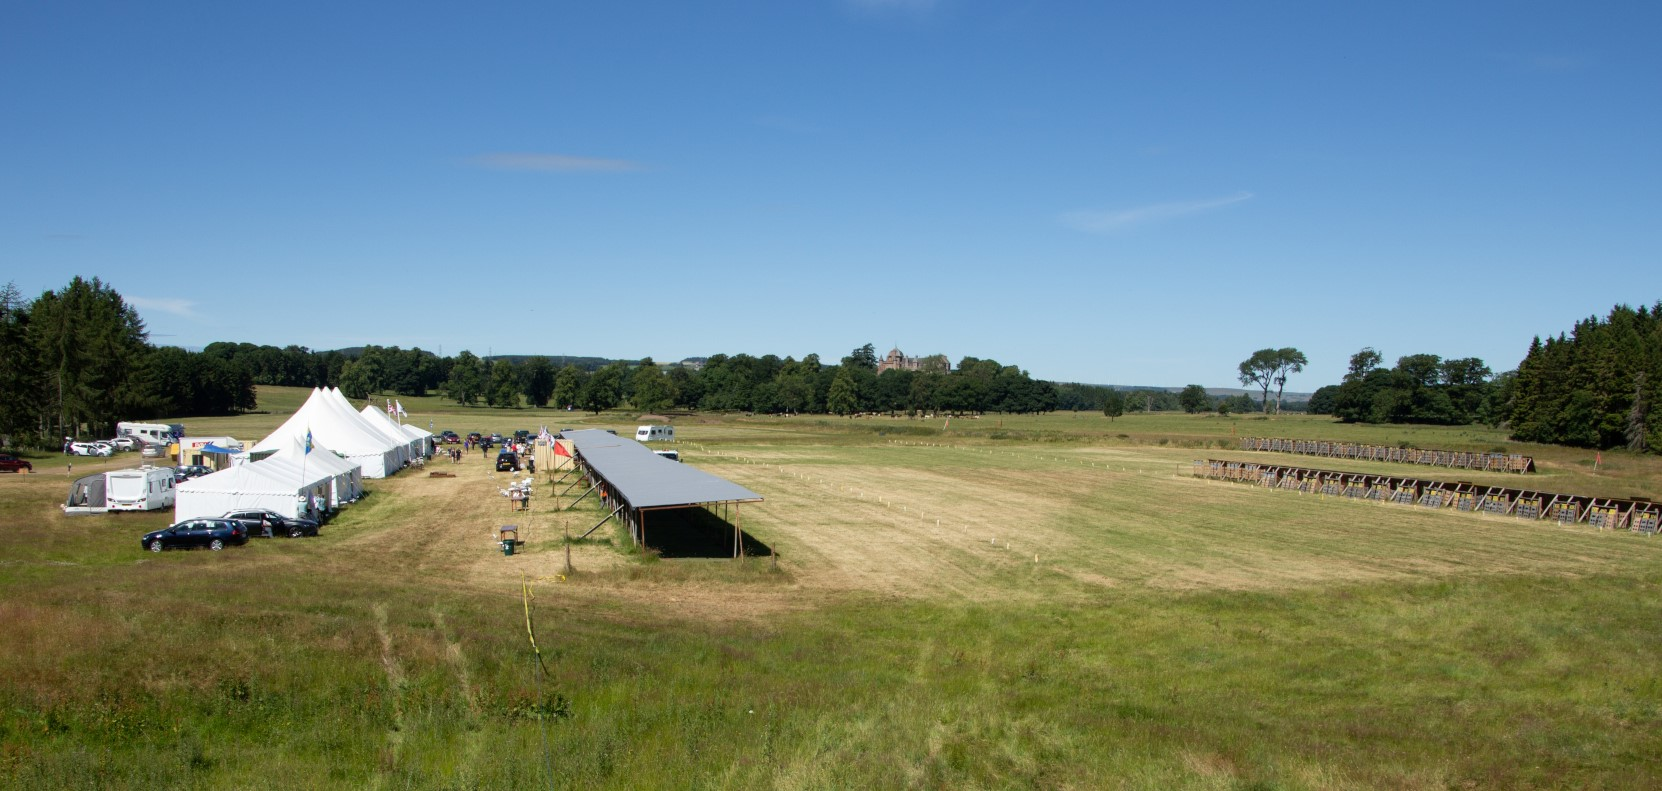 The range at Thirlestane Castle, Lauder for the Scottish National Smallbore Rifle Meeting